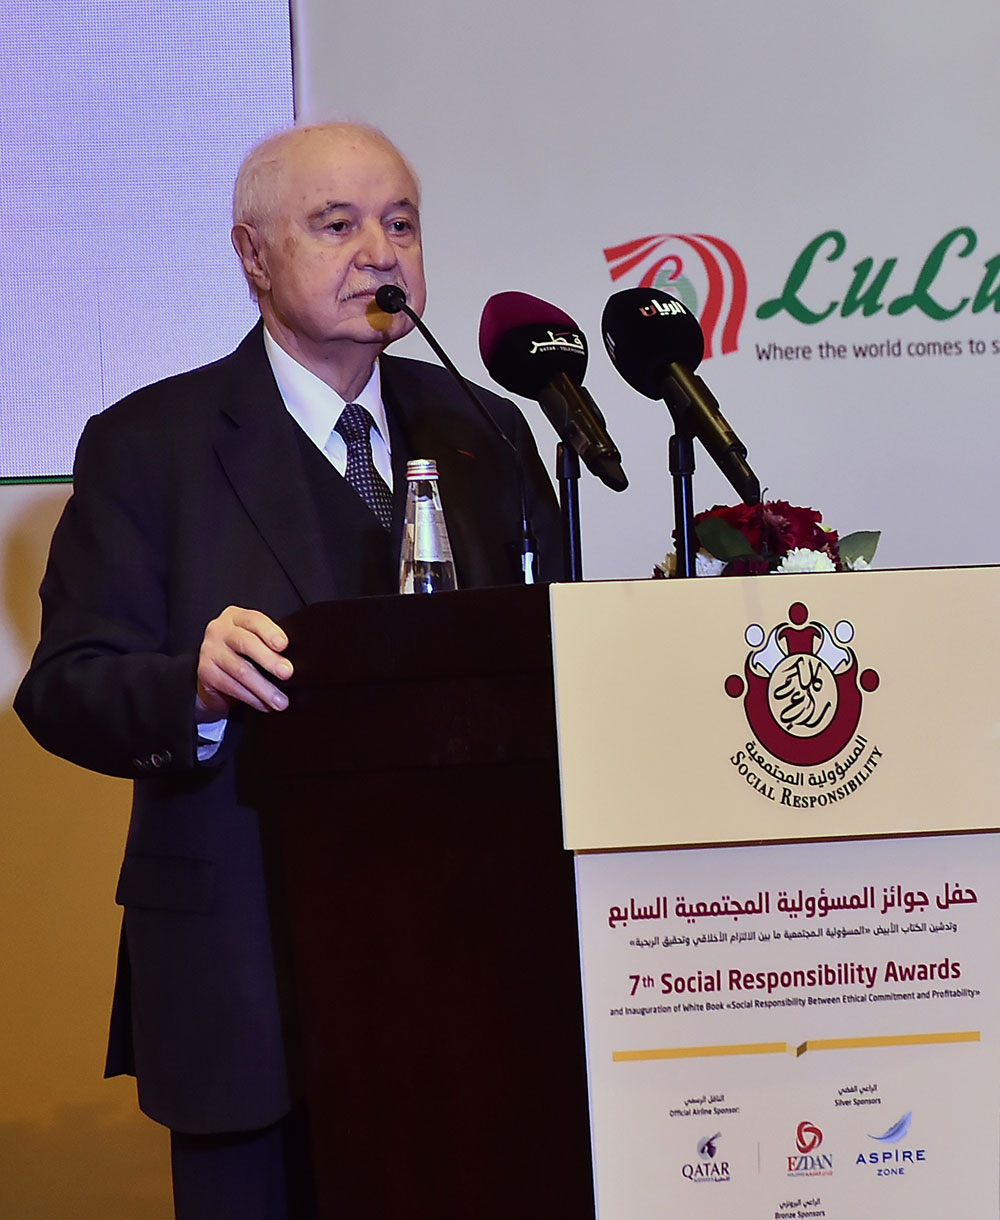 HE Dr. Talal Abu-Ghazaleh, a keynote speaker during the 7th honoring ceremony of the Corporate Social Responsibility (CSR) Awards - Qatar